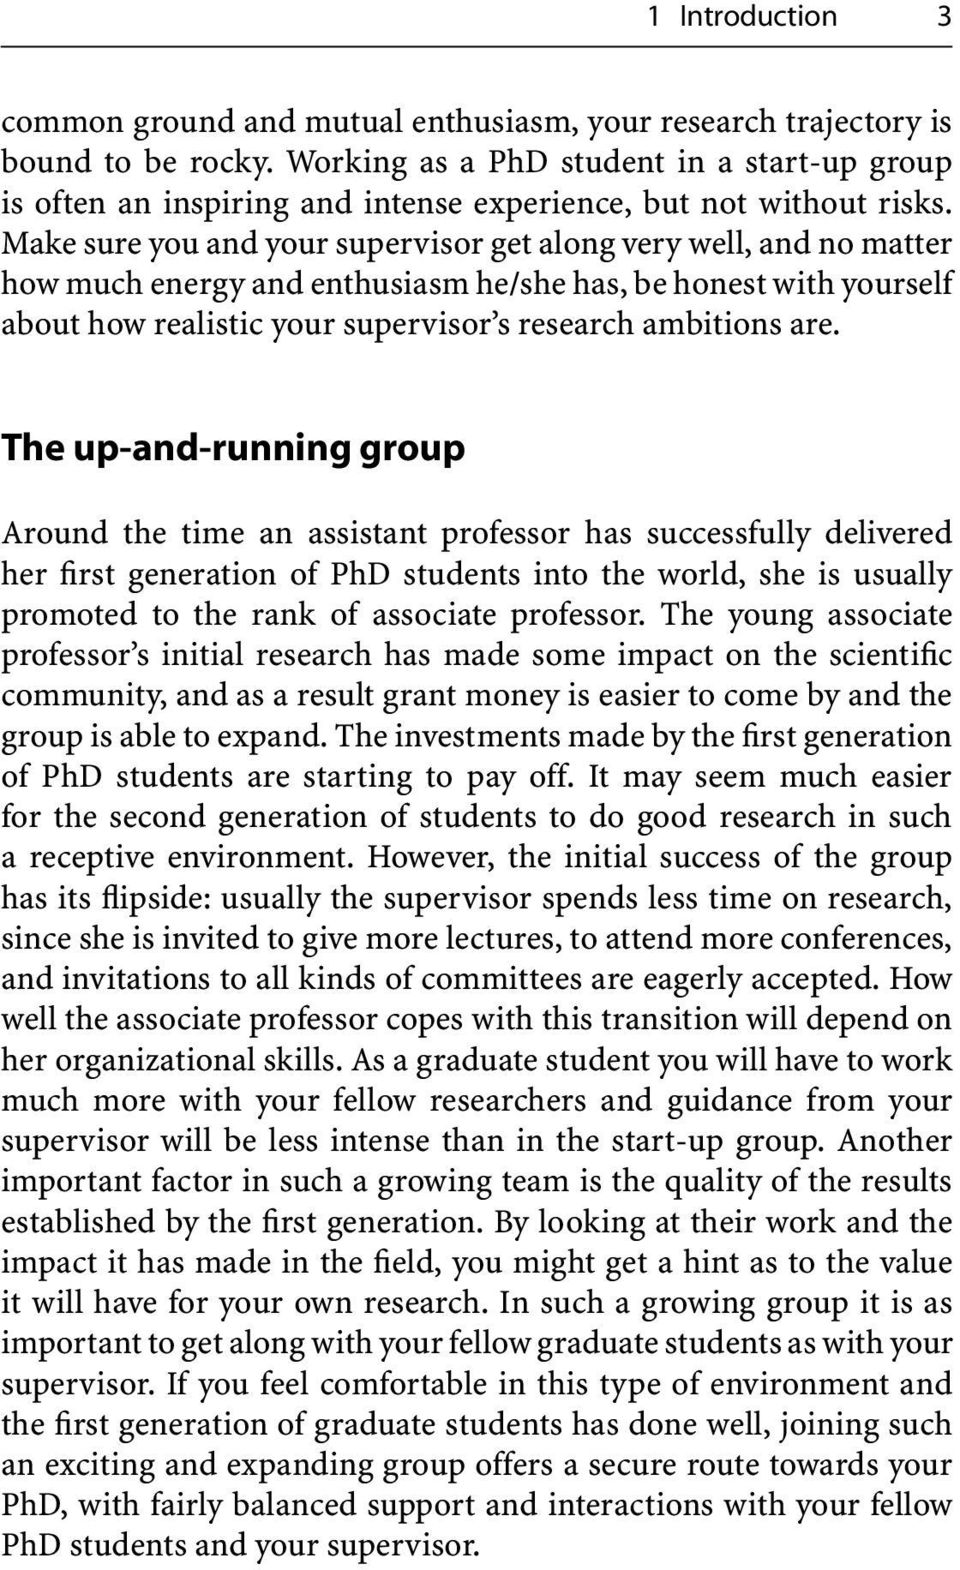 Make sure you and your supervisor get along very well, and no matter how much energy and enthusiasm he/she has, be honest with yourself about how realistic your supervisor s research ambitions are.